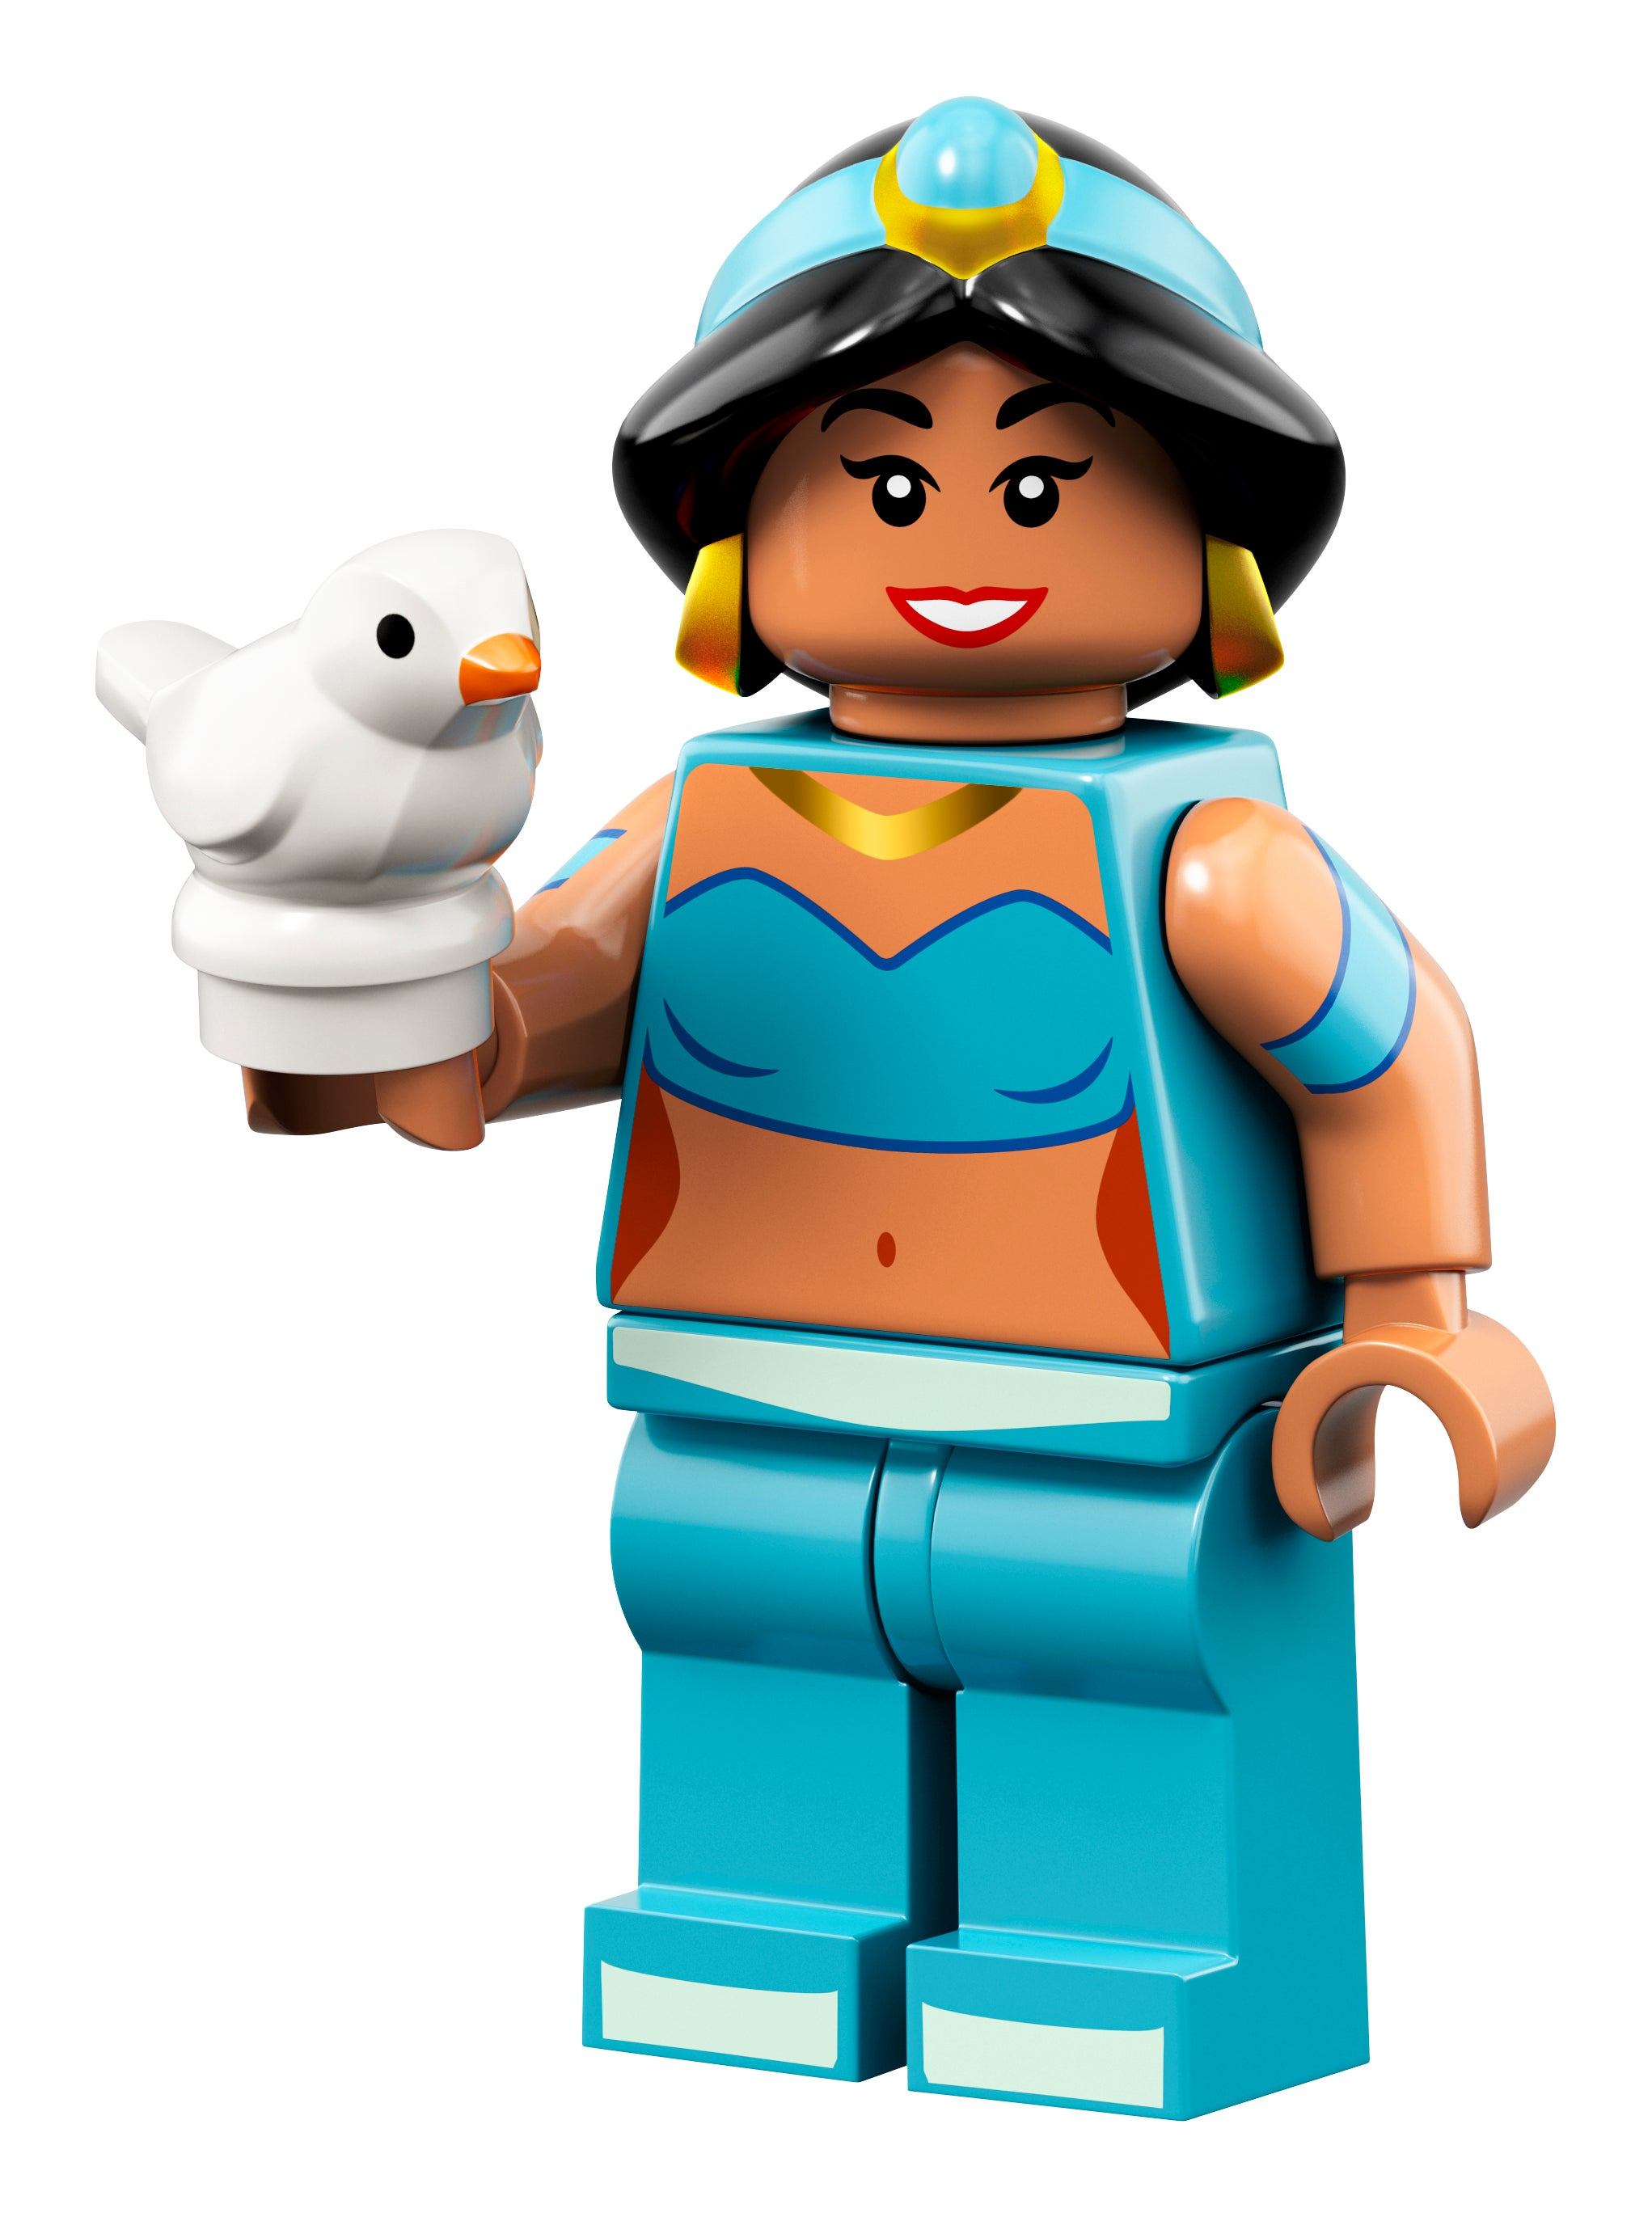 The Next Wave of Lego Minifigures is Classic Disney Themed